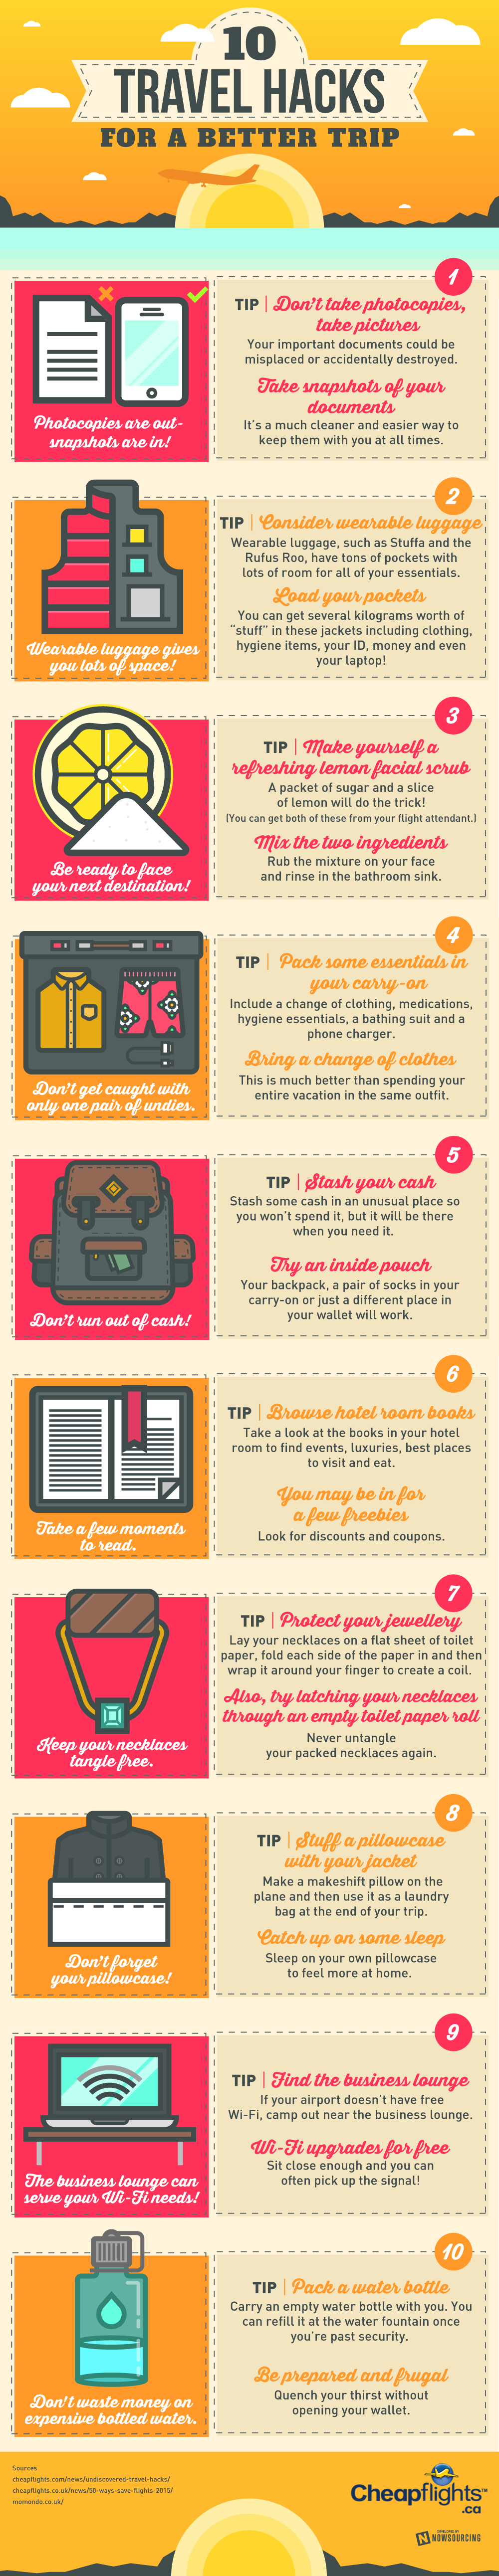 Top 10 Travel Hacks For A Better Trip Infographic